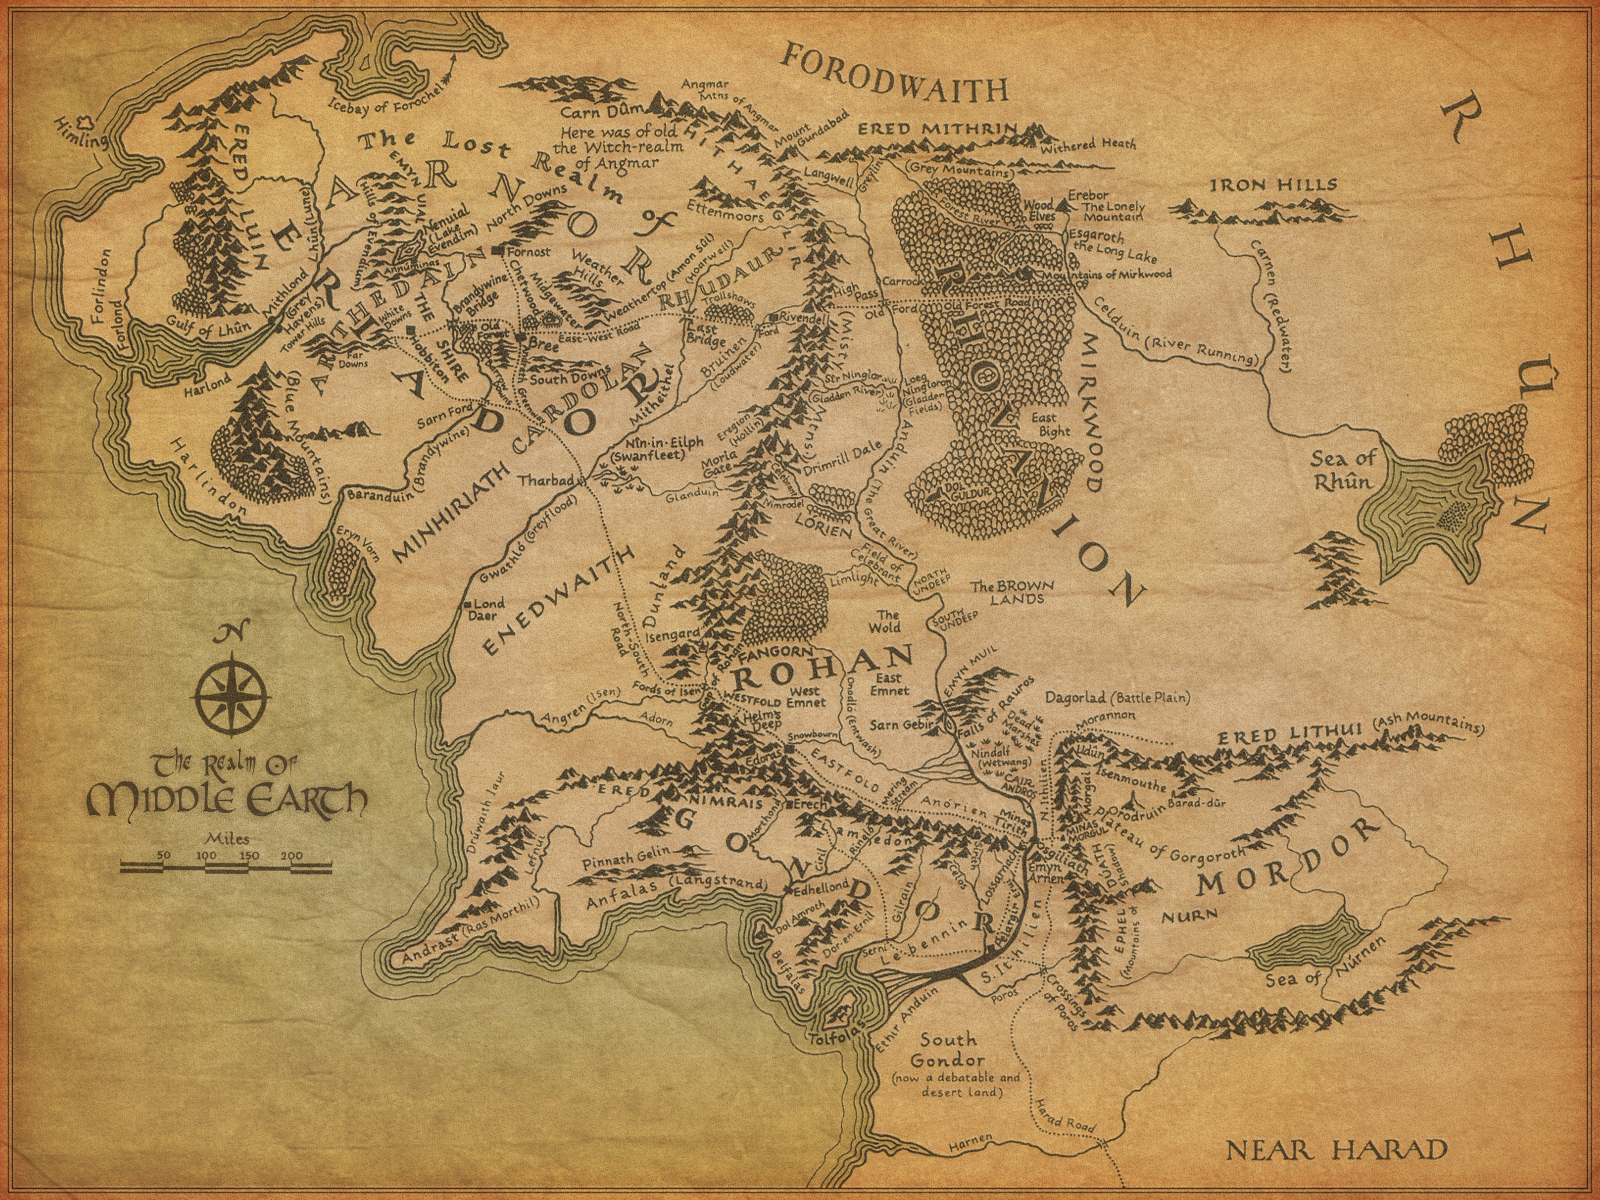 http://2.bp.blogspot.com/-tESlrOsPikE/Ts_GQdPzw5I/AAAAAAAAAQM/ocTbTduwaRQ/s1600/Map-of-Middle-Earth-lord-of-the-rings-2329809-1600-1200.jpg